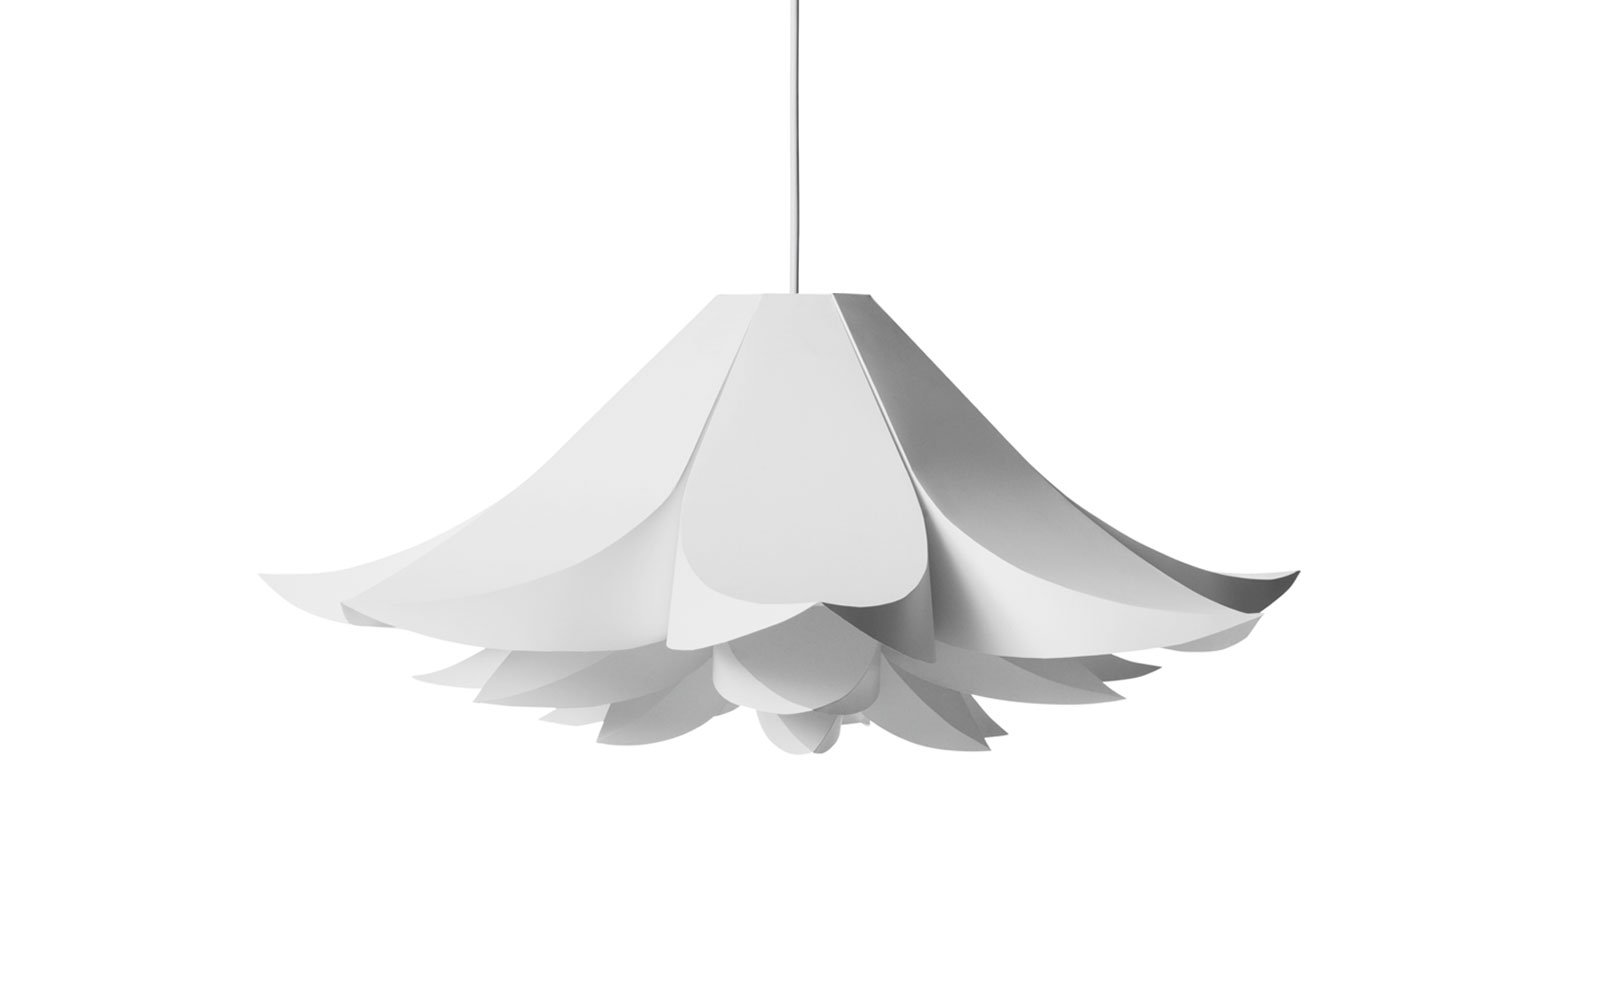 Norm Medium White NC Design Lamp